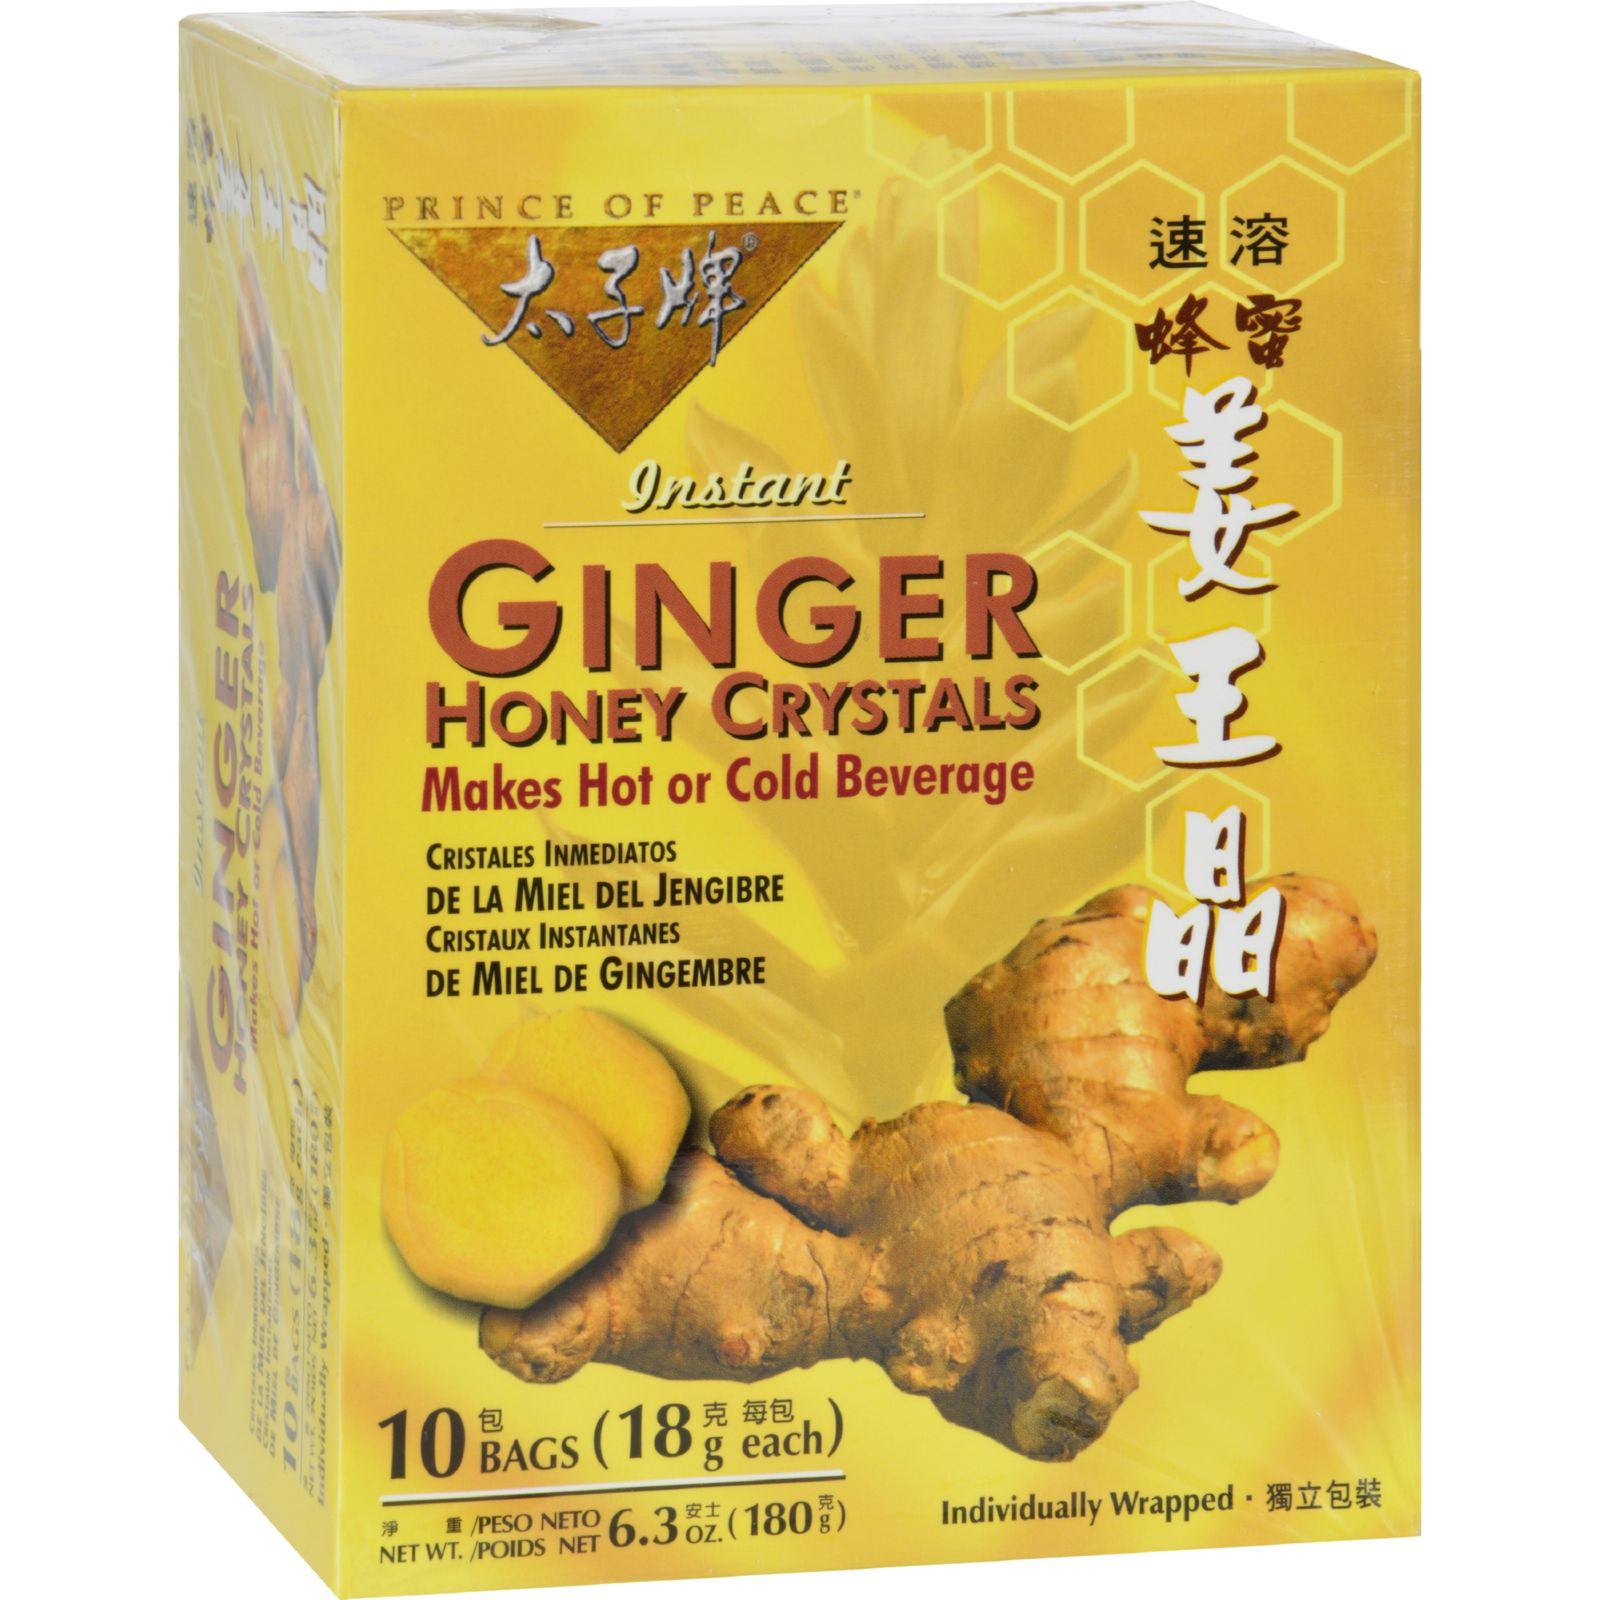 Prince of Peace Ginger Honey Crystals 10 Packet(s)